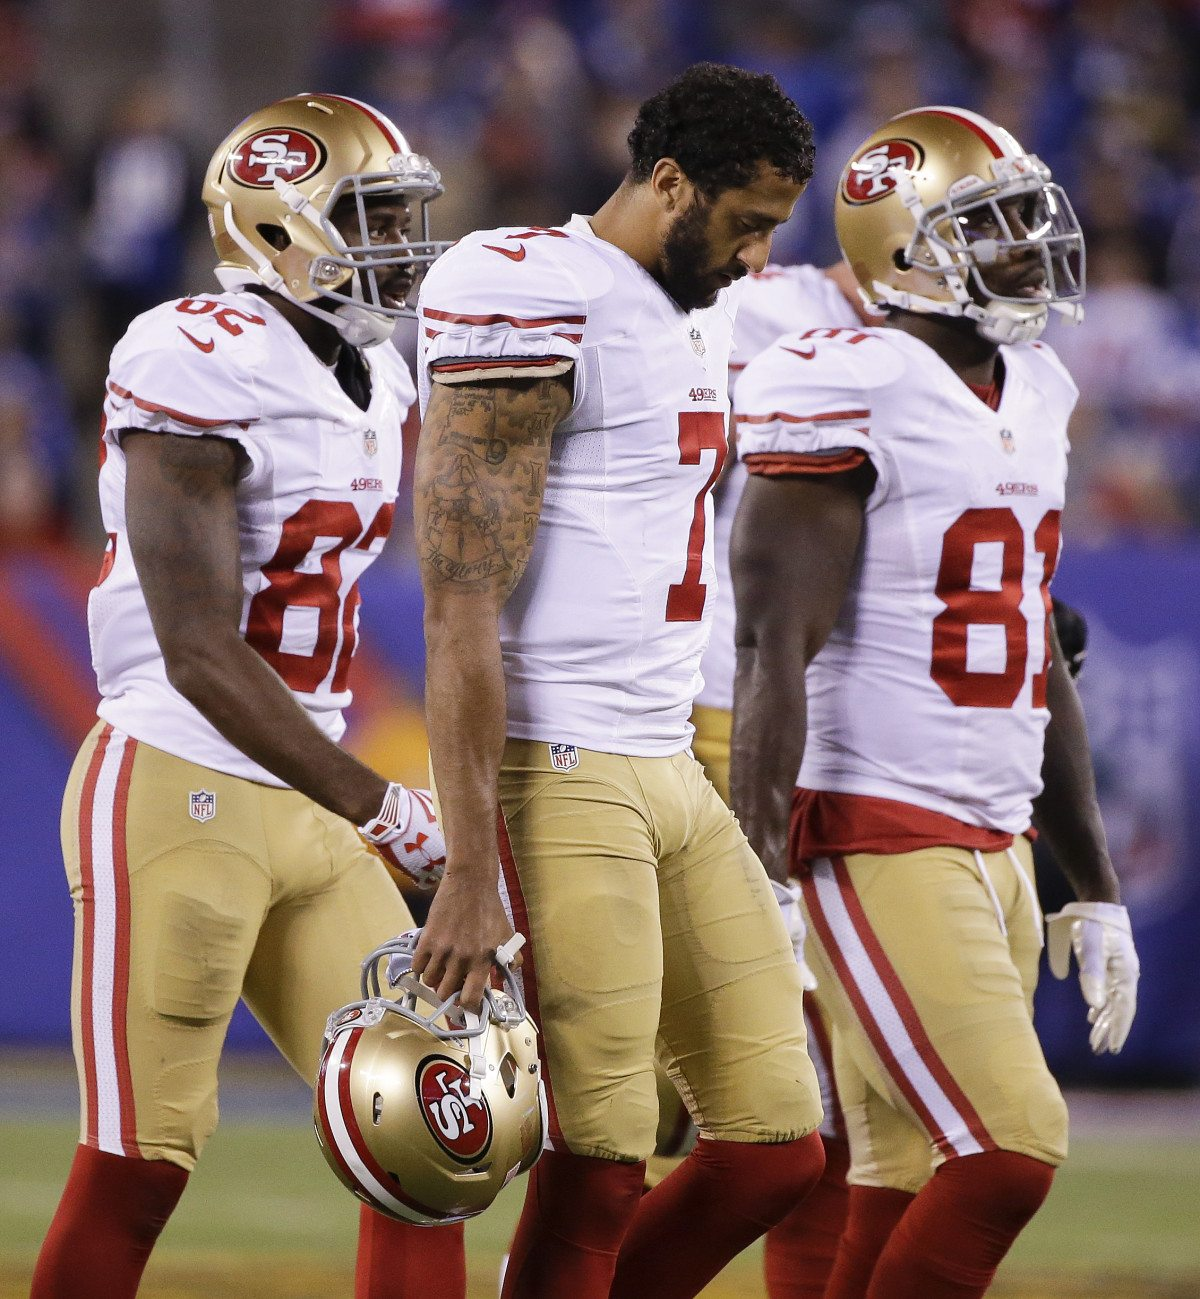 San Francisco 49ers quarterback Colin Kaepernick (7) walks off the field with wide receiver Torrey Smith (82) and wide receiver Anquan Boldin (81) during the fourth quarter game against the New York Giants, Sunday, Oct. 11, 2015, in East Rutherford, N.J. (Seth Wenig/AP)